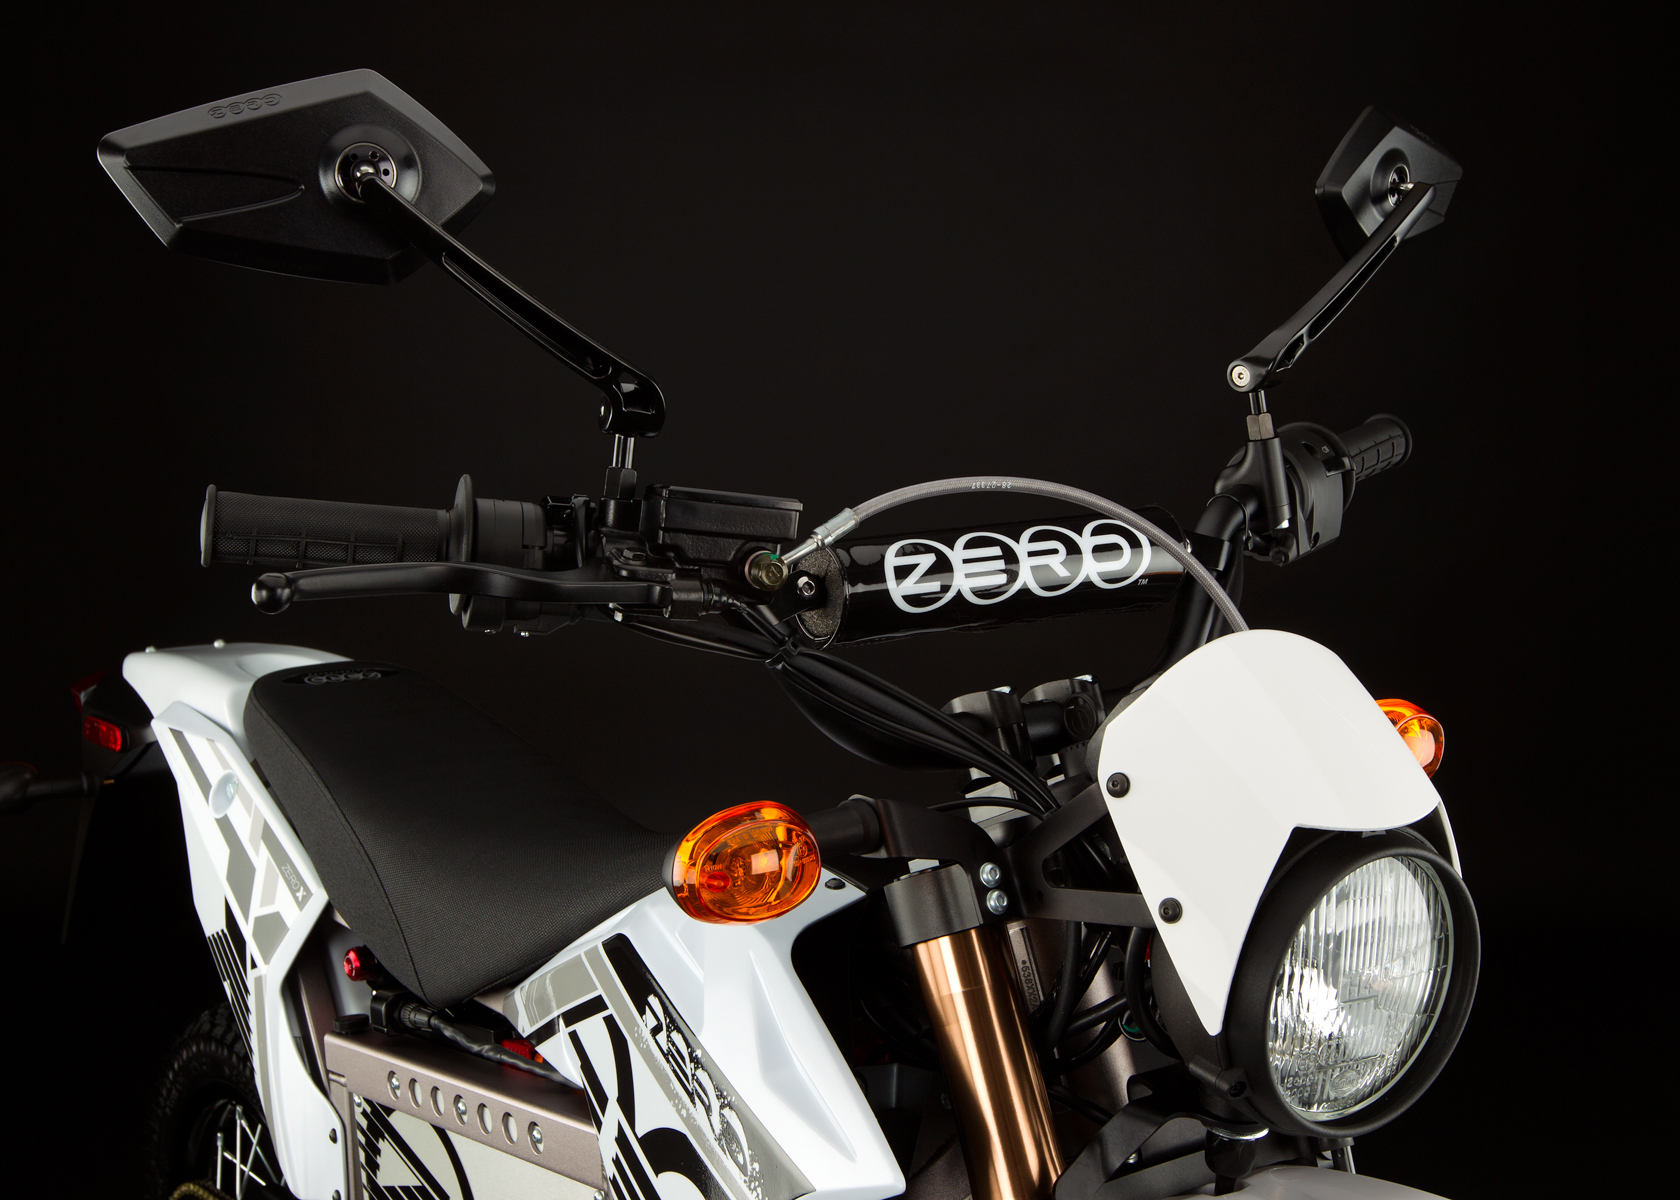 '.2012 Zero X Electric Motorcycle: Street Legal.'